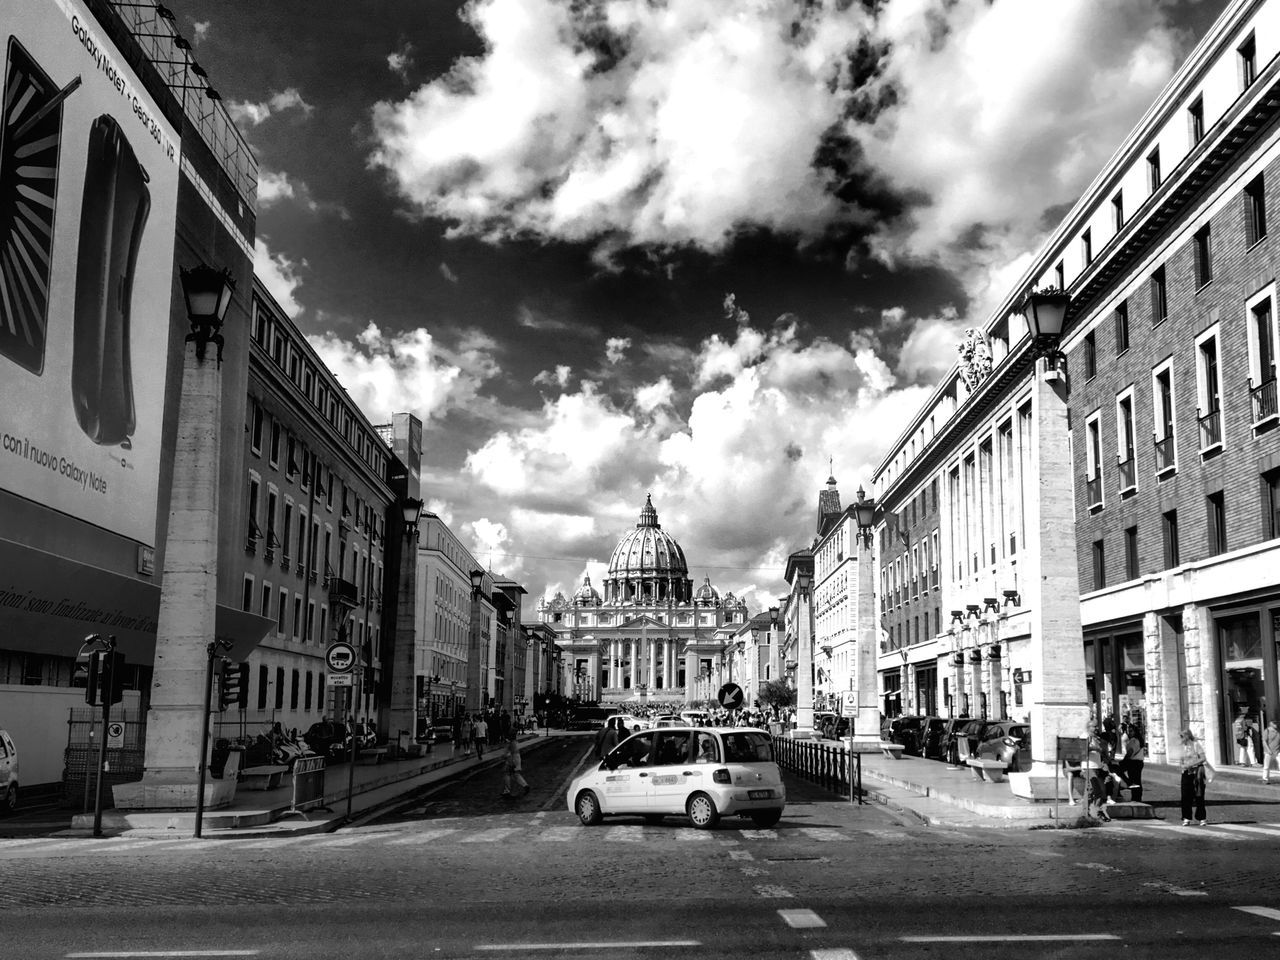 When in Rome 013 Architecture City Rome Famous Place IPhoneography Vatican Italy Black & White Blackandwhite VSCO Black And White Photography Lightroom Mobile AMPt - Street Shootermag Travel Destinations Architecture